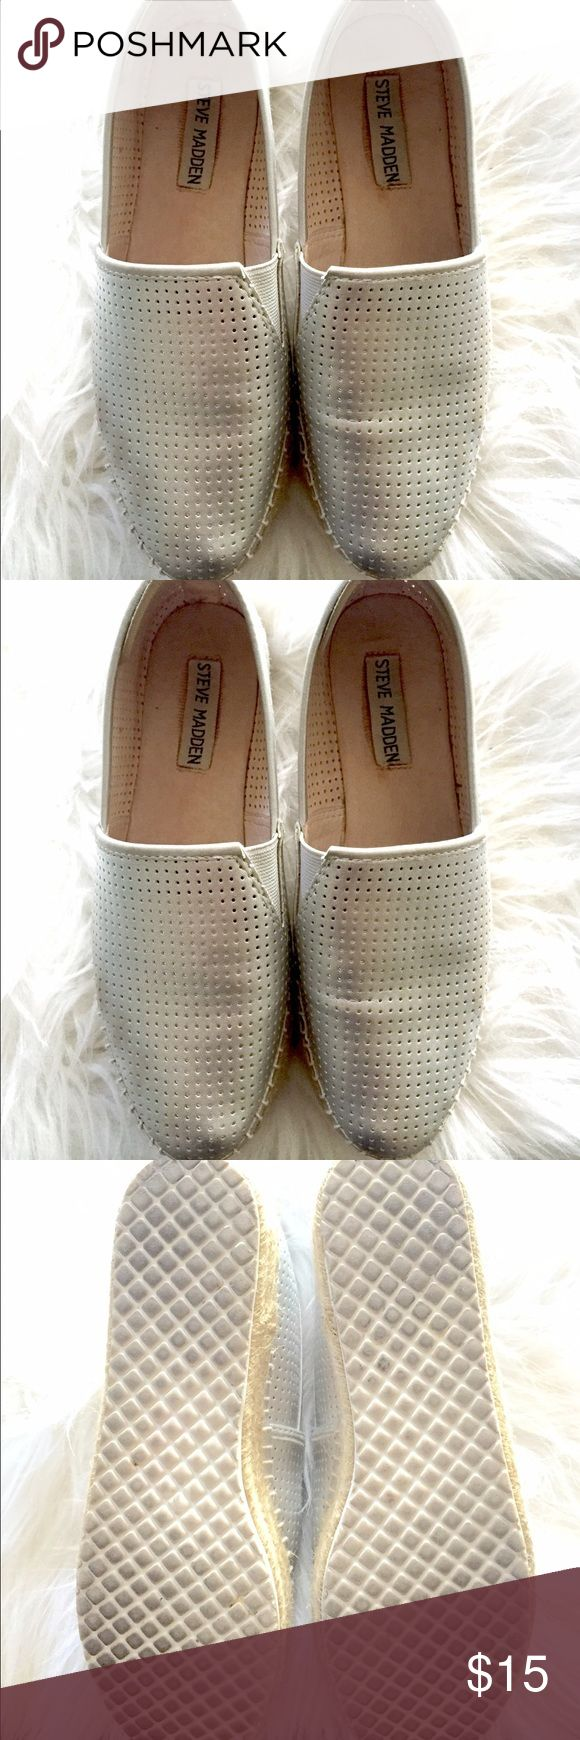 SALE!!! STEVE MADDEN Espadrilles Silver Espadrilles, in good conditions! Very comfortable ! Steve Madden Shoes Espadrilles